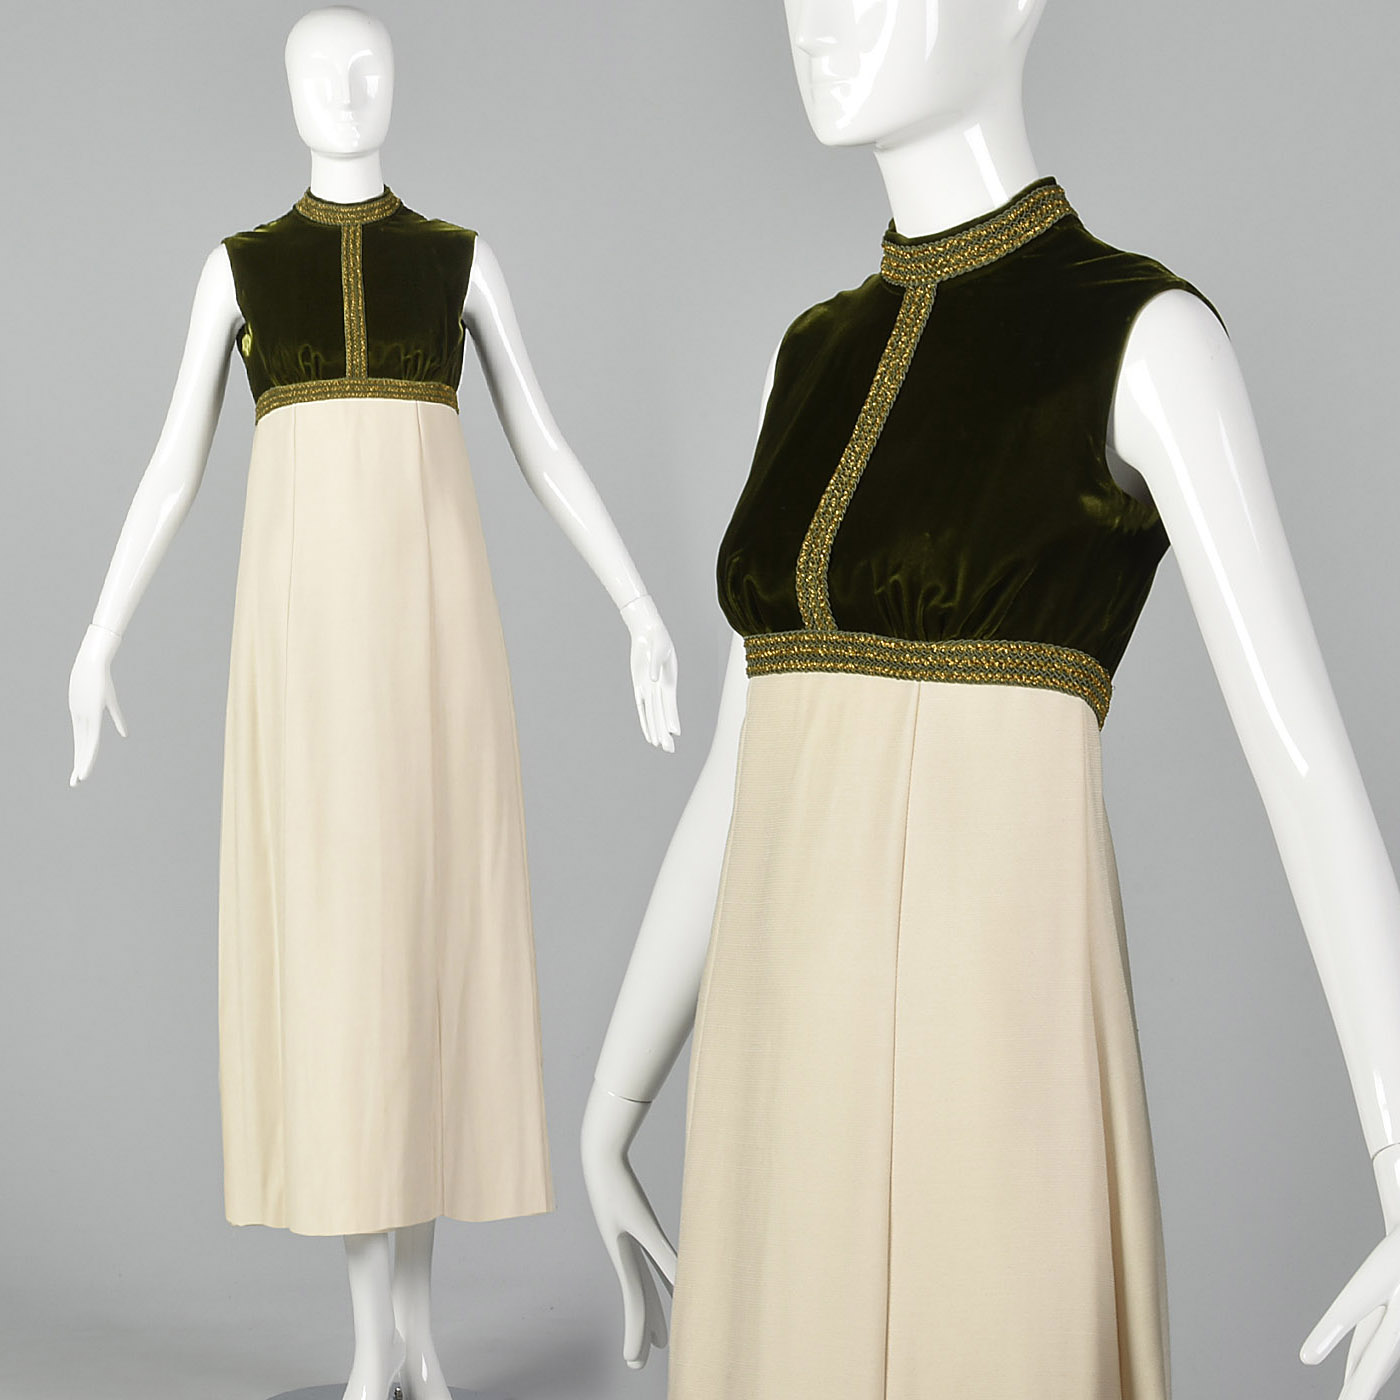 0443b2c9460 Details about XXS 1960s Green and Ivory Formal Dress Empire Waist VTG Formal  Prom Dress